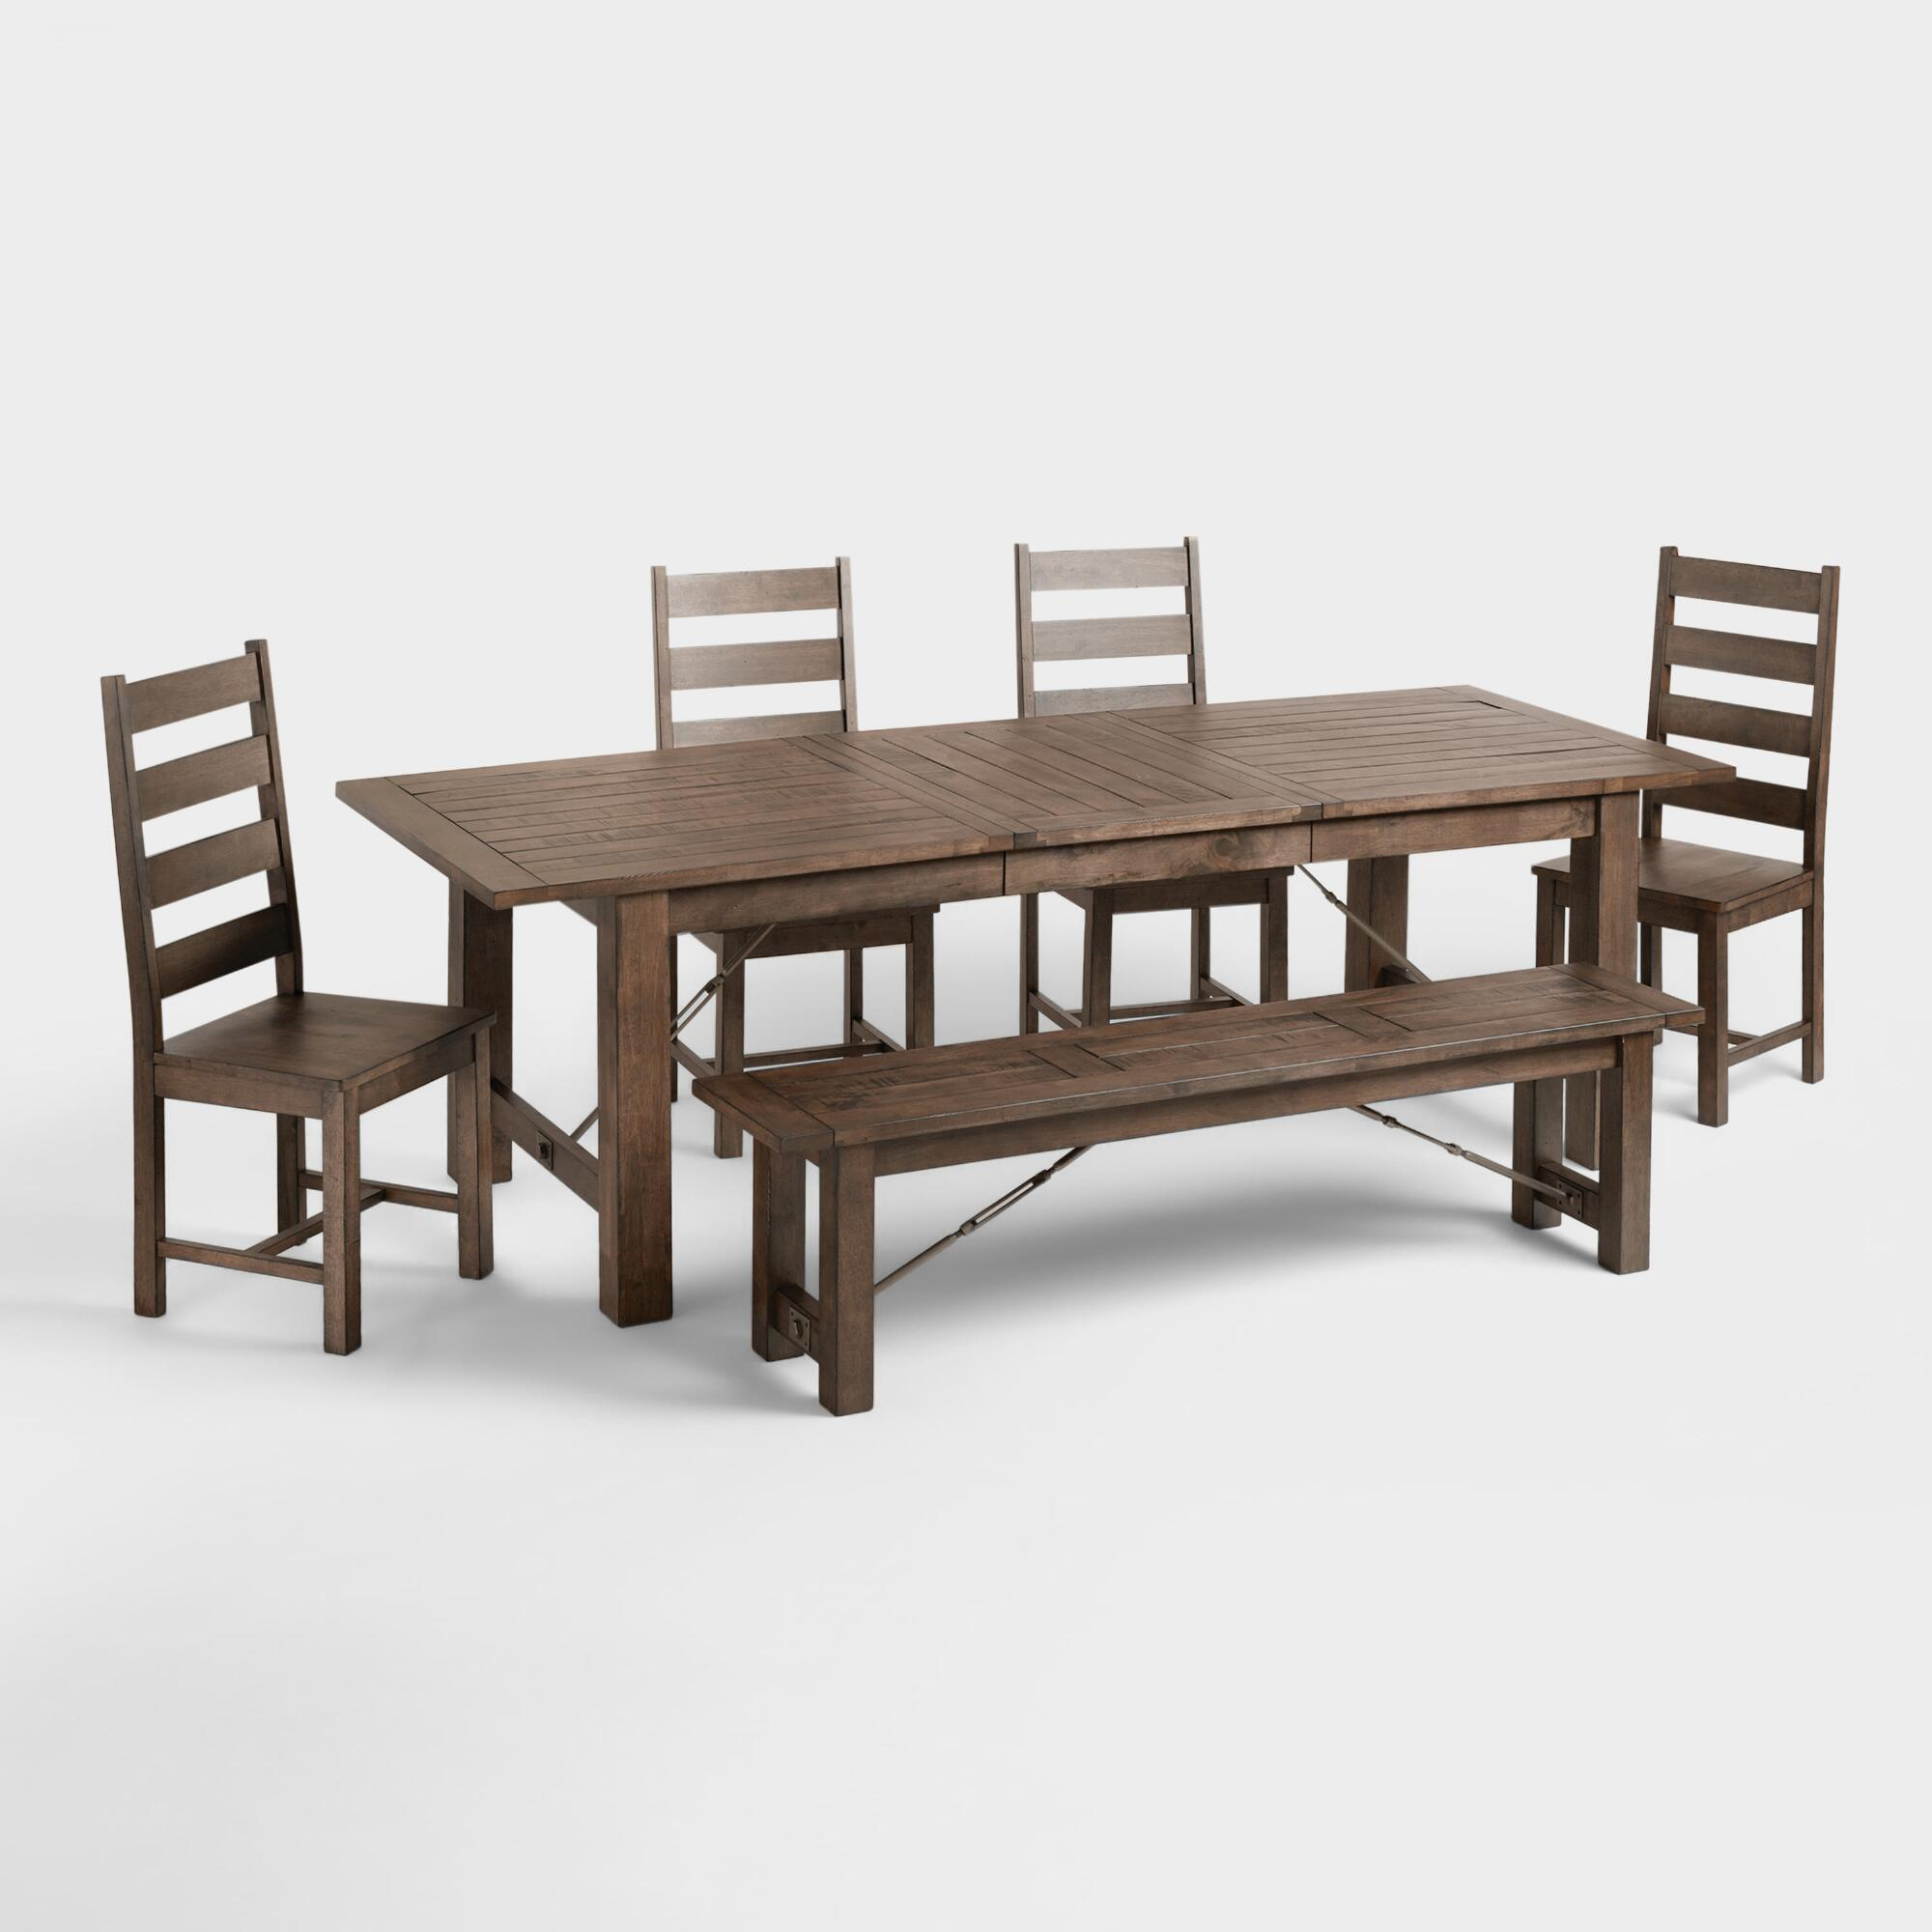 Garner dining collection world market for Dining table table and chairs